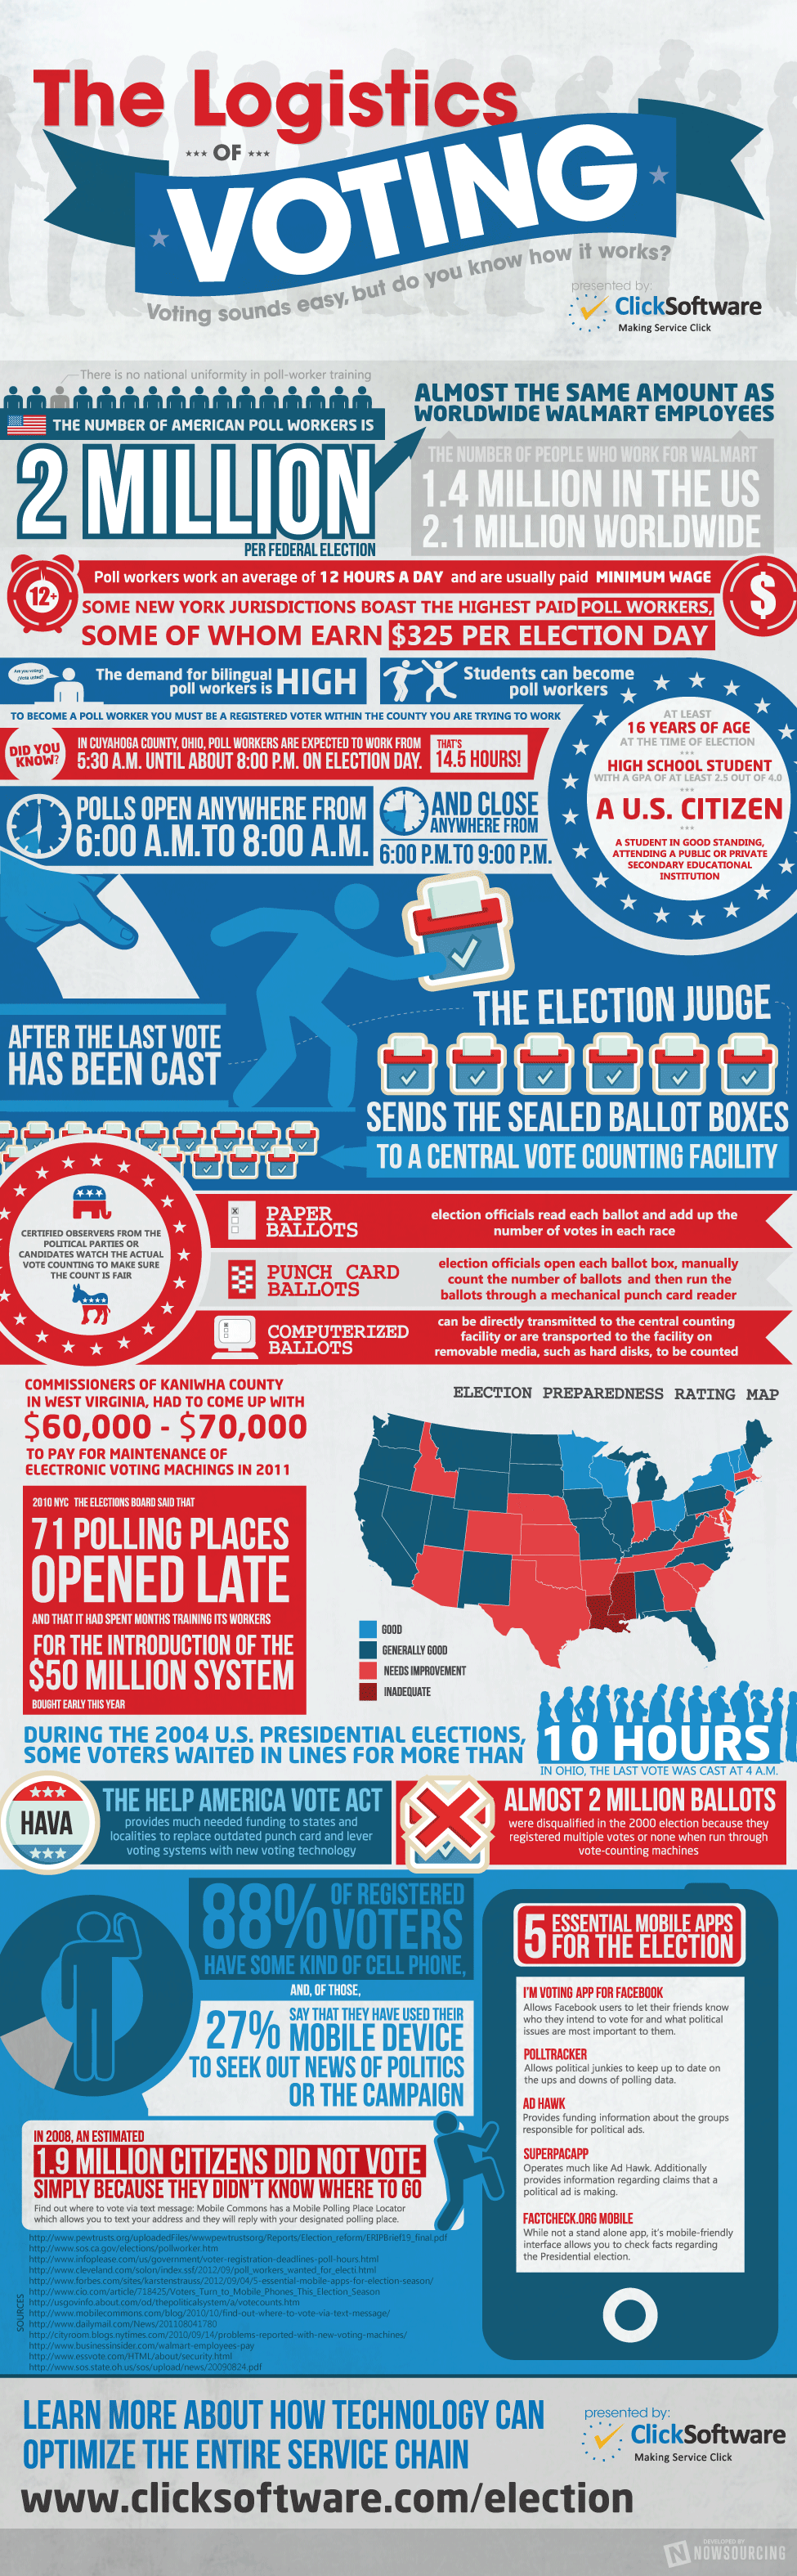 The Logistics of Voting [Infographic] image election infographic